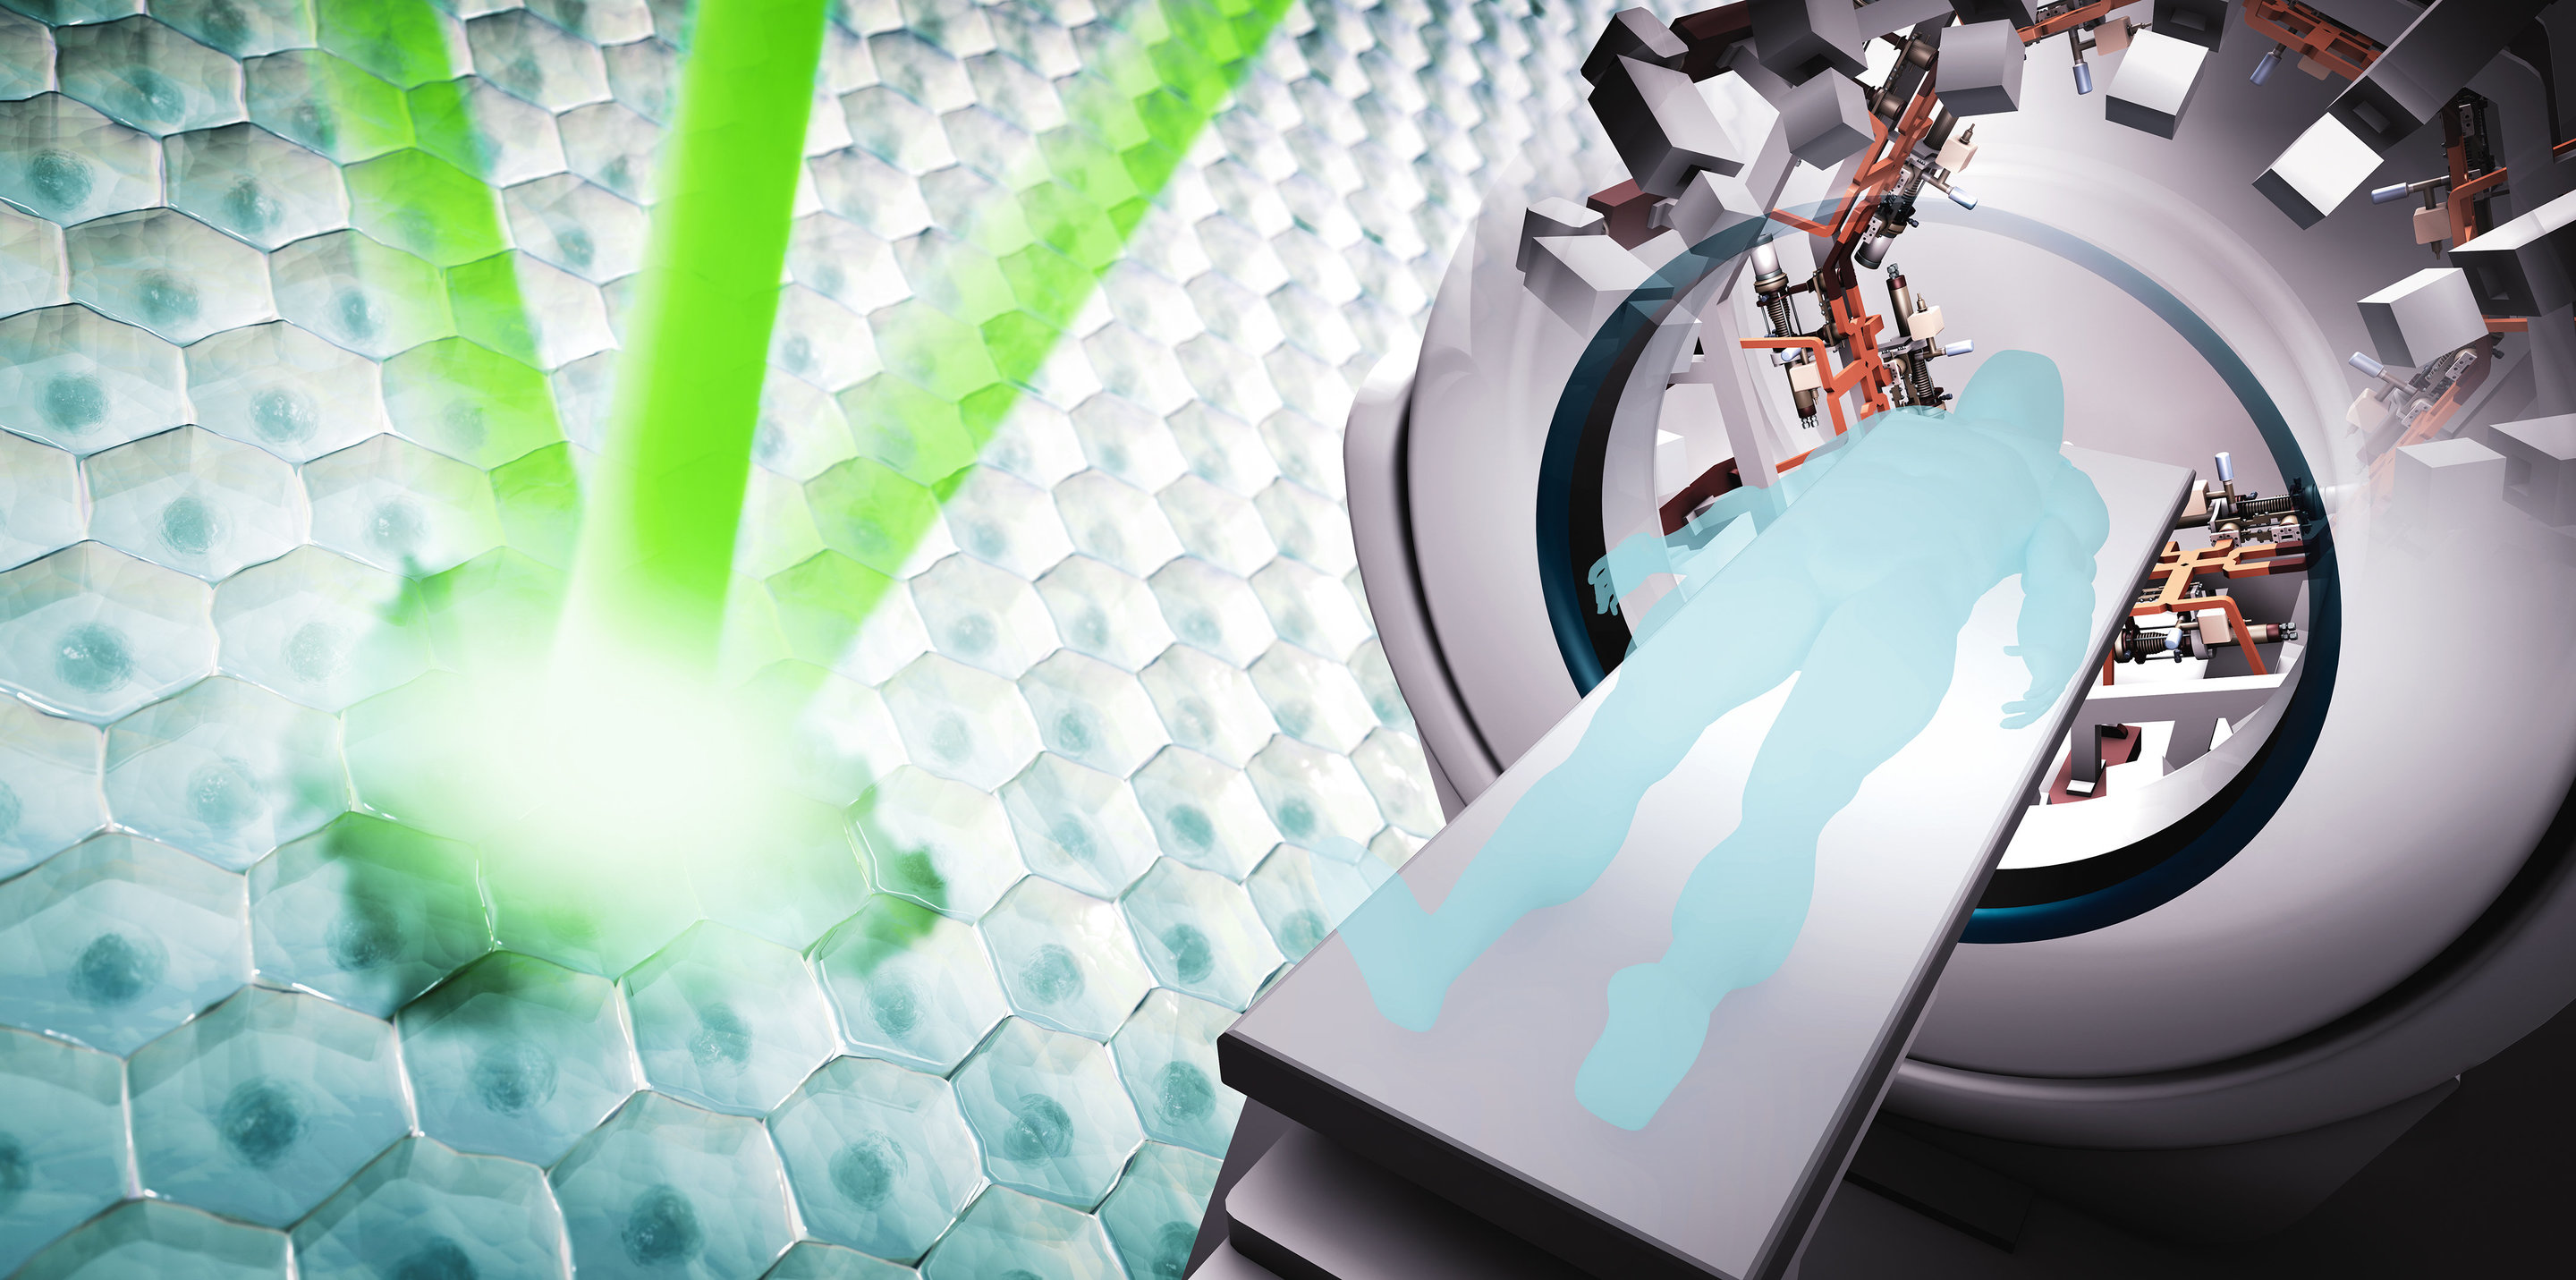 The future of fighting cancer: Zapping tumors in less than a second